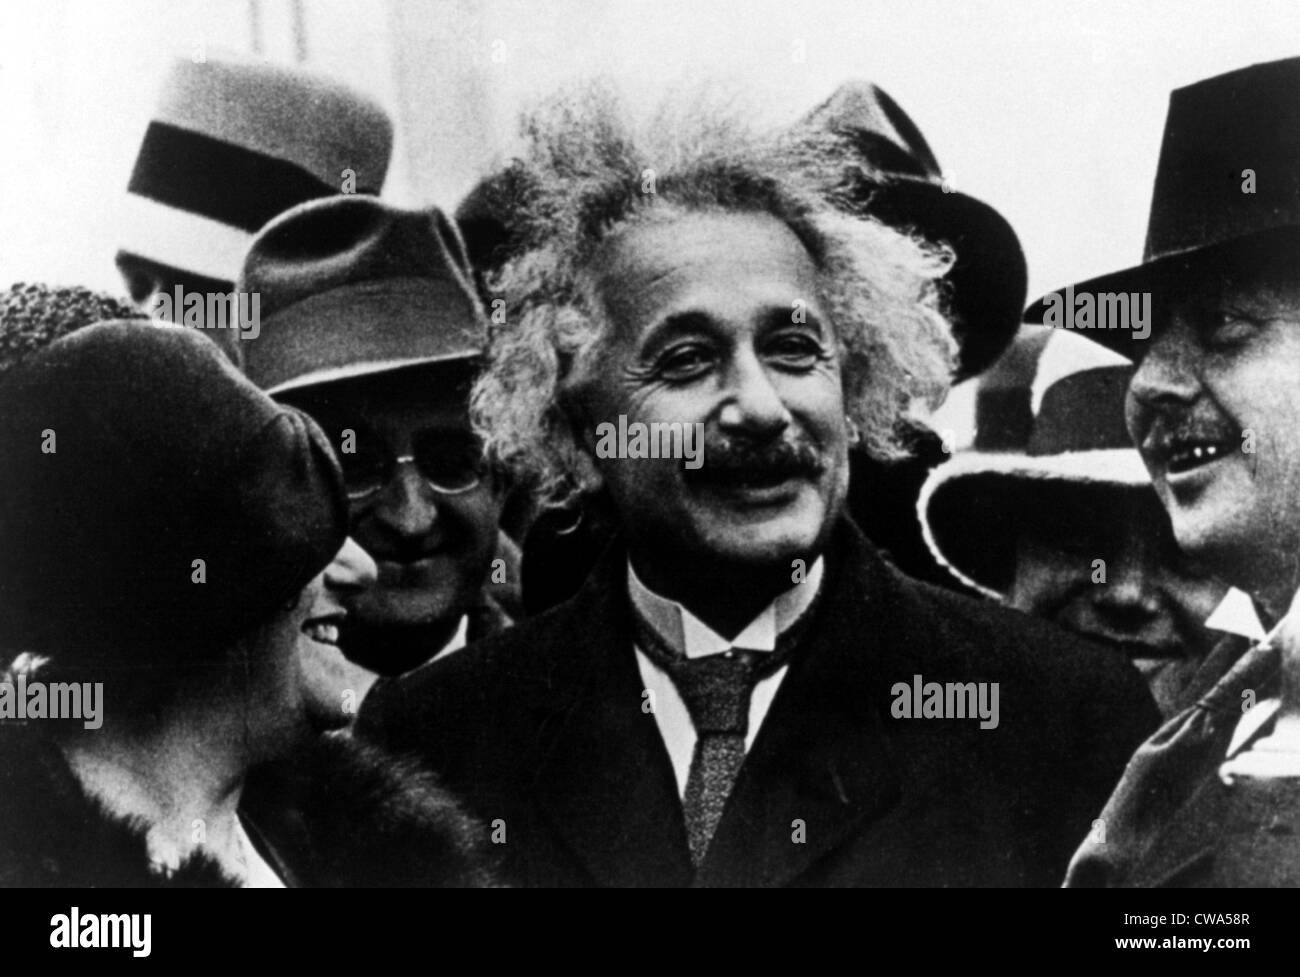 Albert Einstein & wife Elsa during a visit to America in the 1920's. Courtesy: CSU Archives / Everett Collection - Stock Image